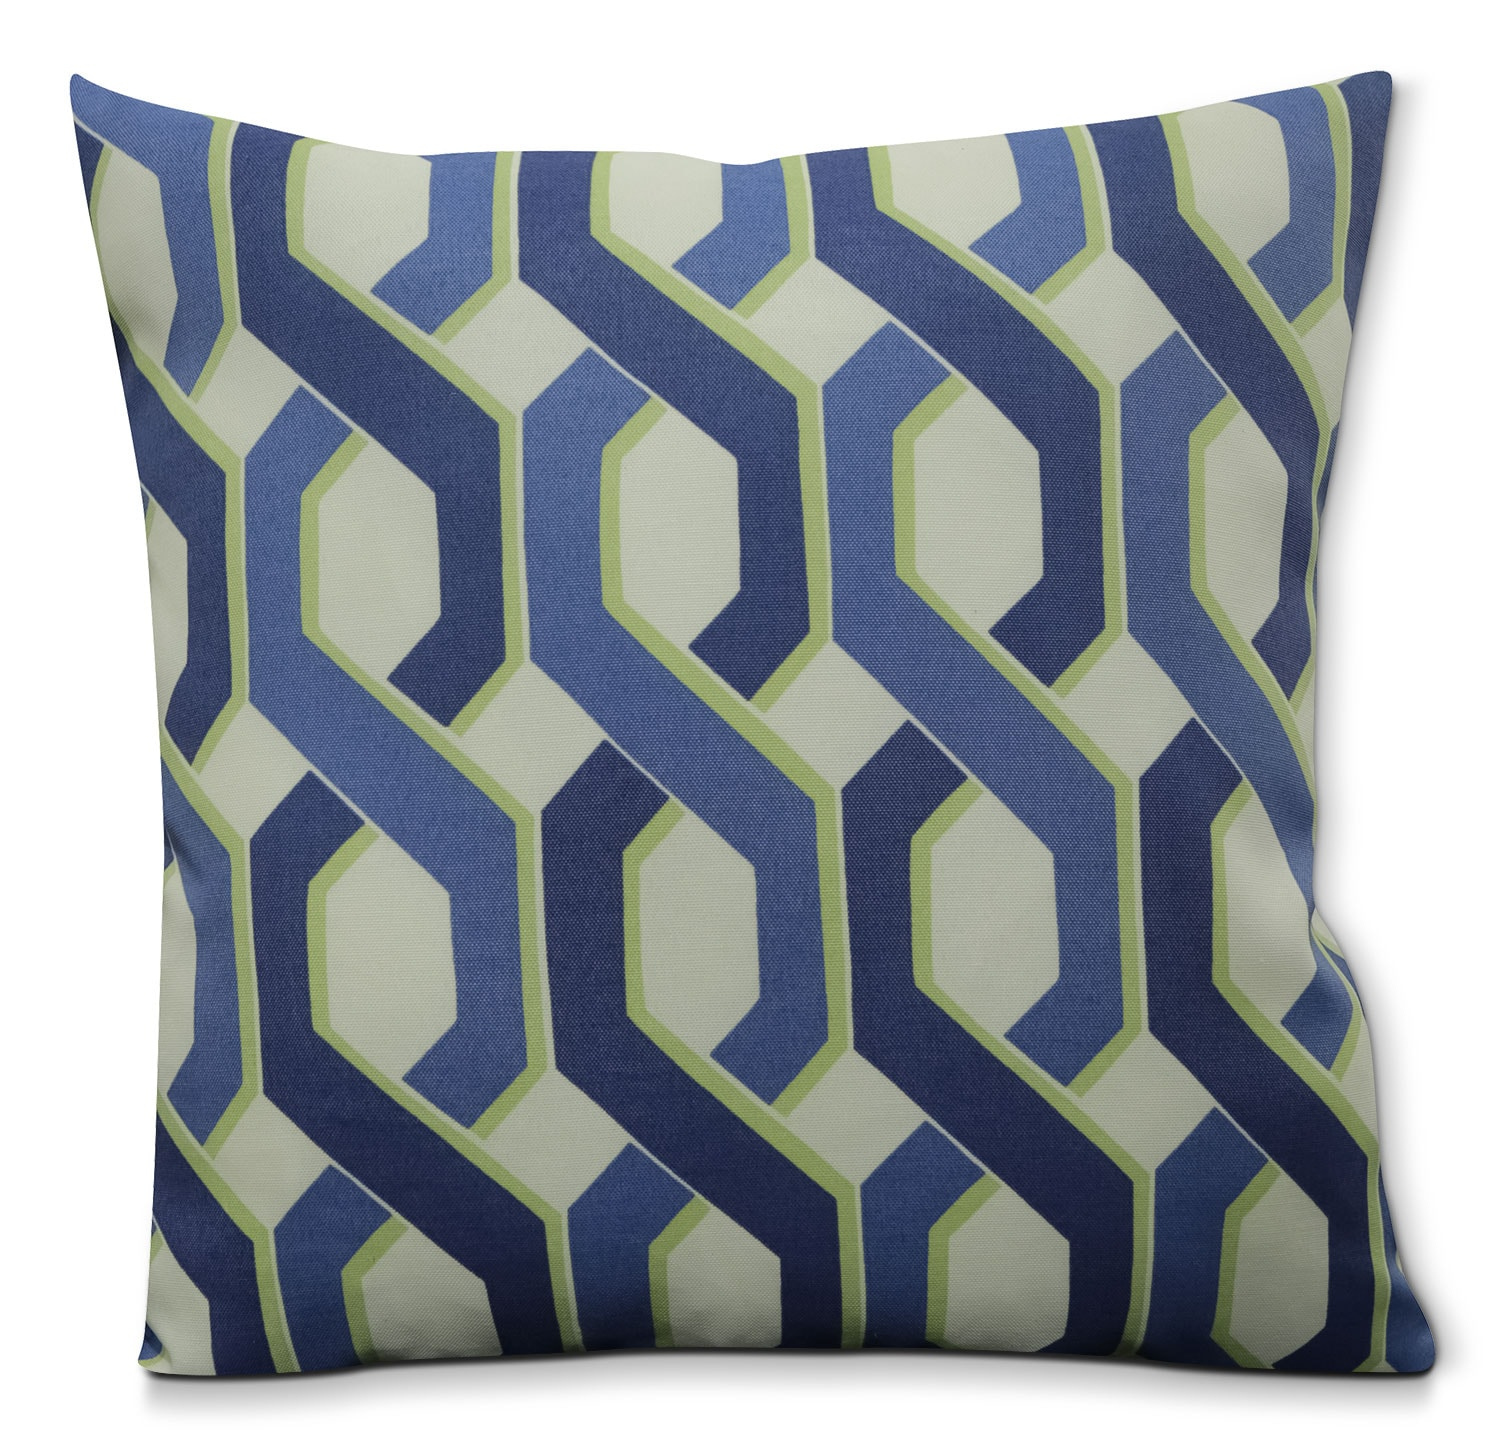 Outdoor Furniture - Geolink Outdoor Accent Pillow